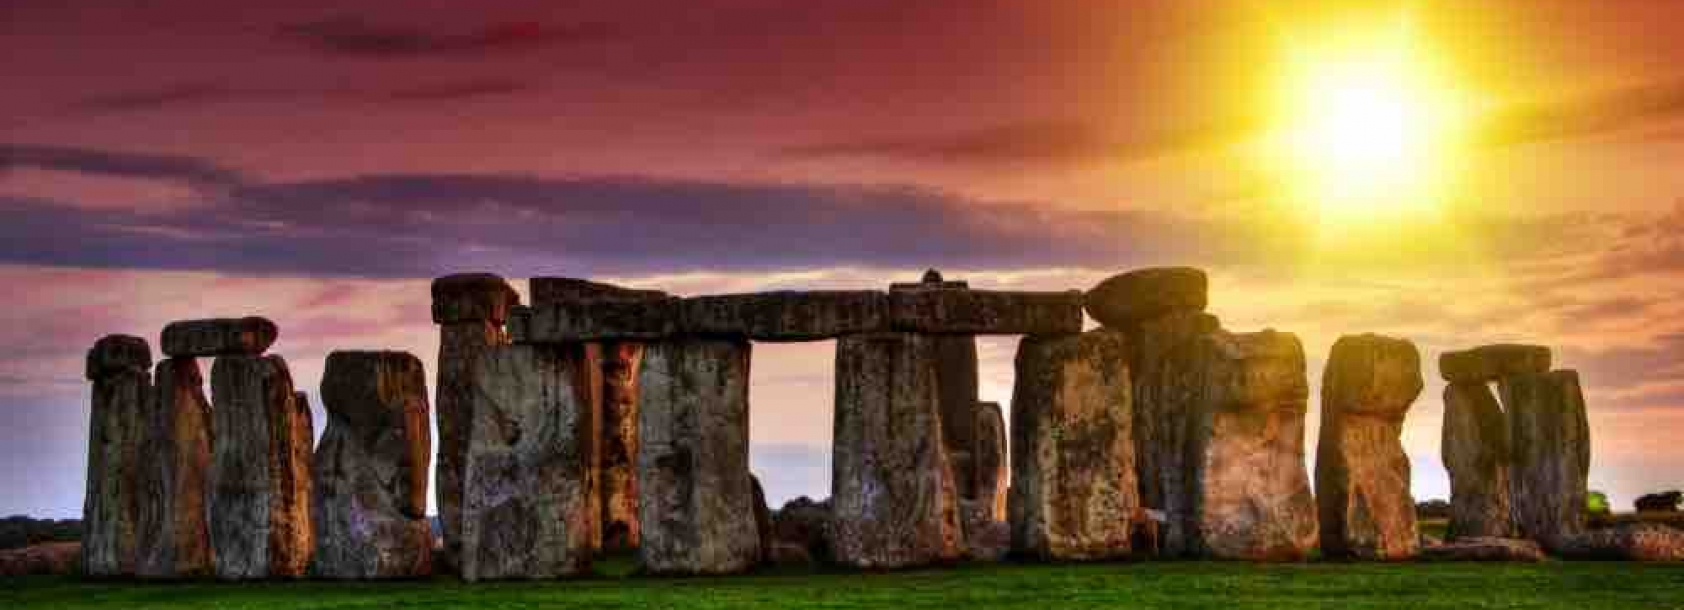 United Kingdom_Stonehenge